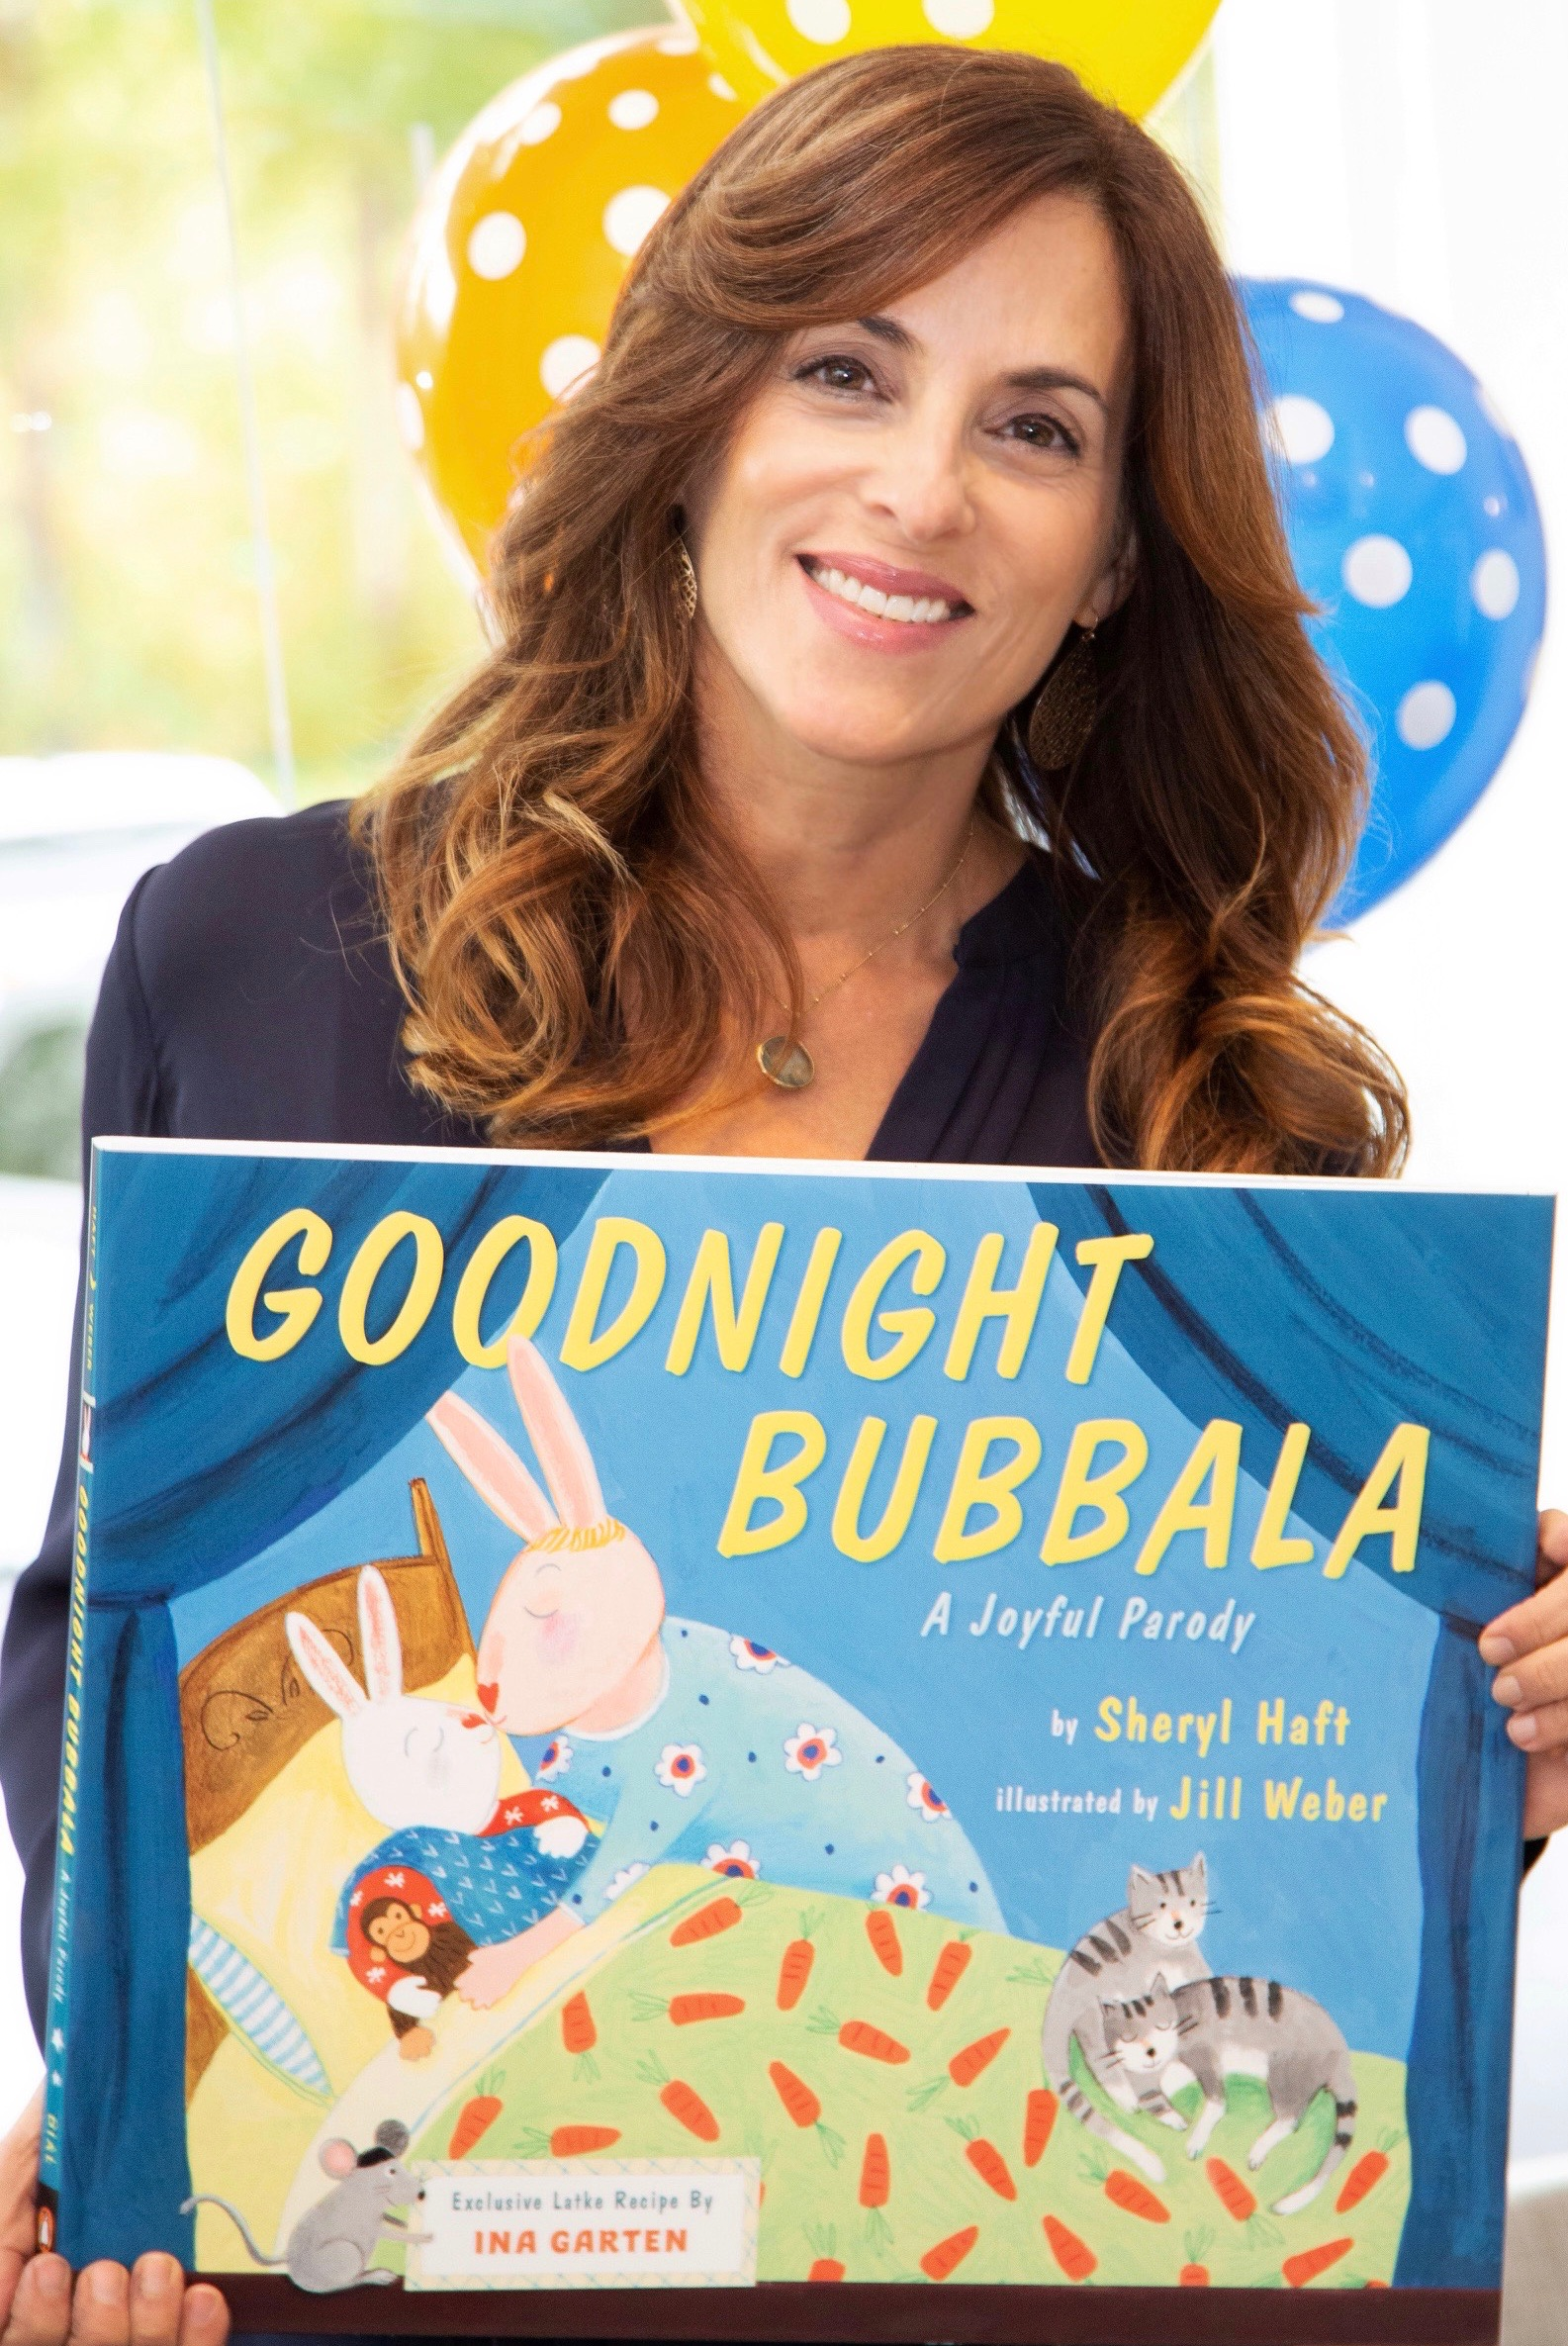 Goodnight Bubbala, an AMAZON #1 BEST SELLER by Sheryl Haft!